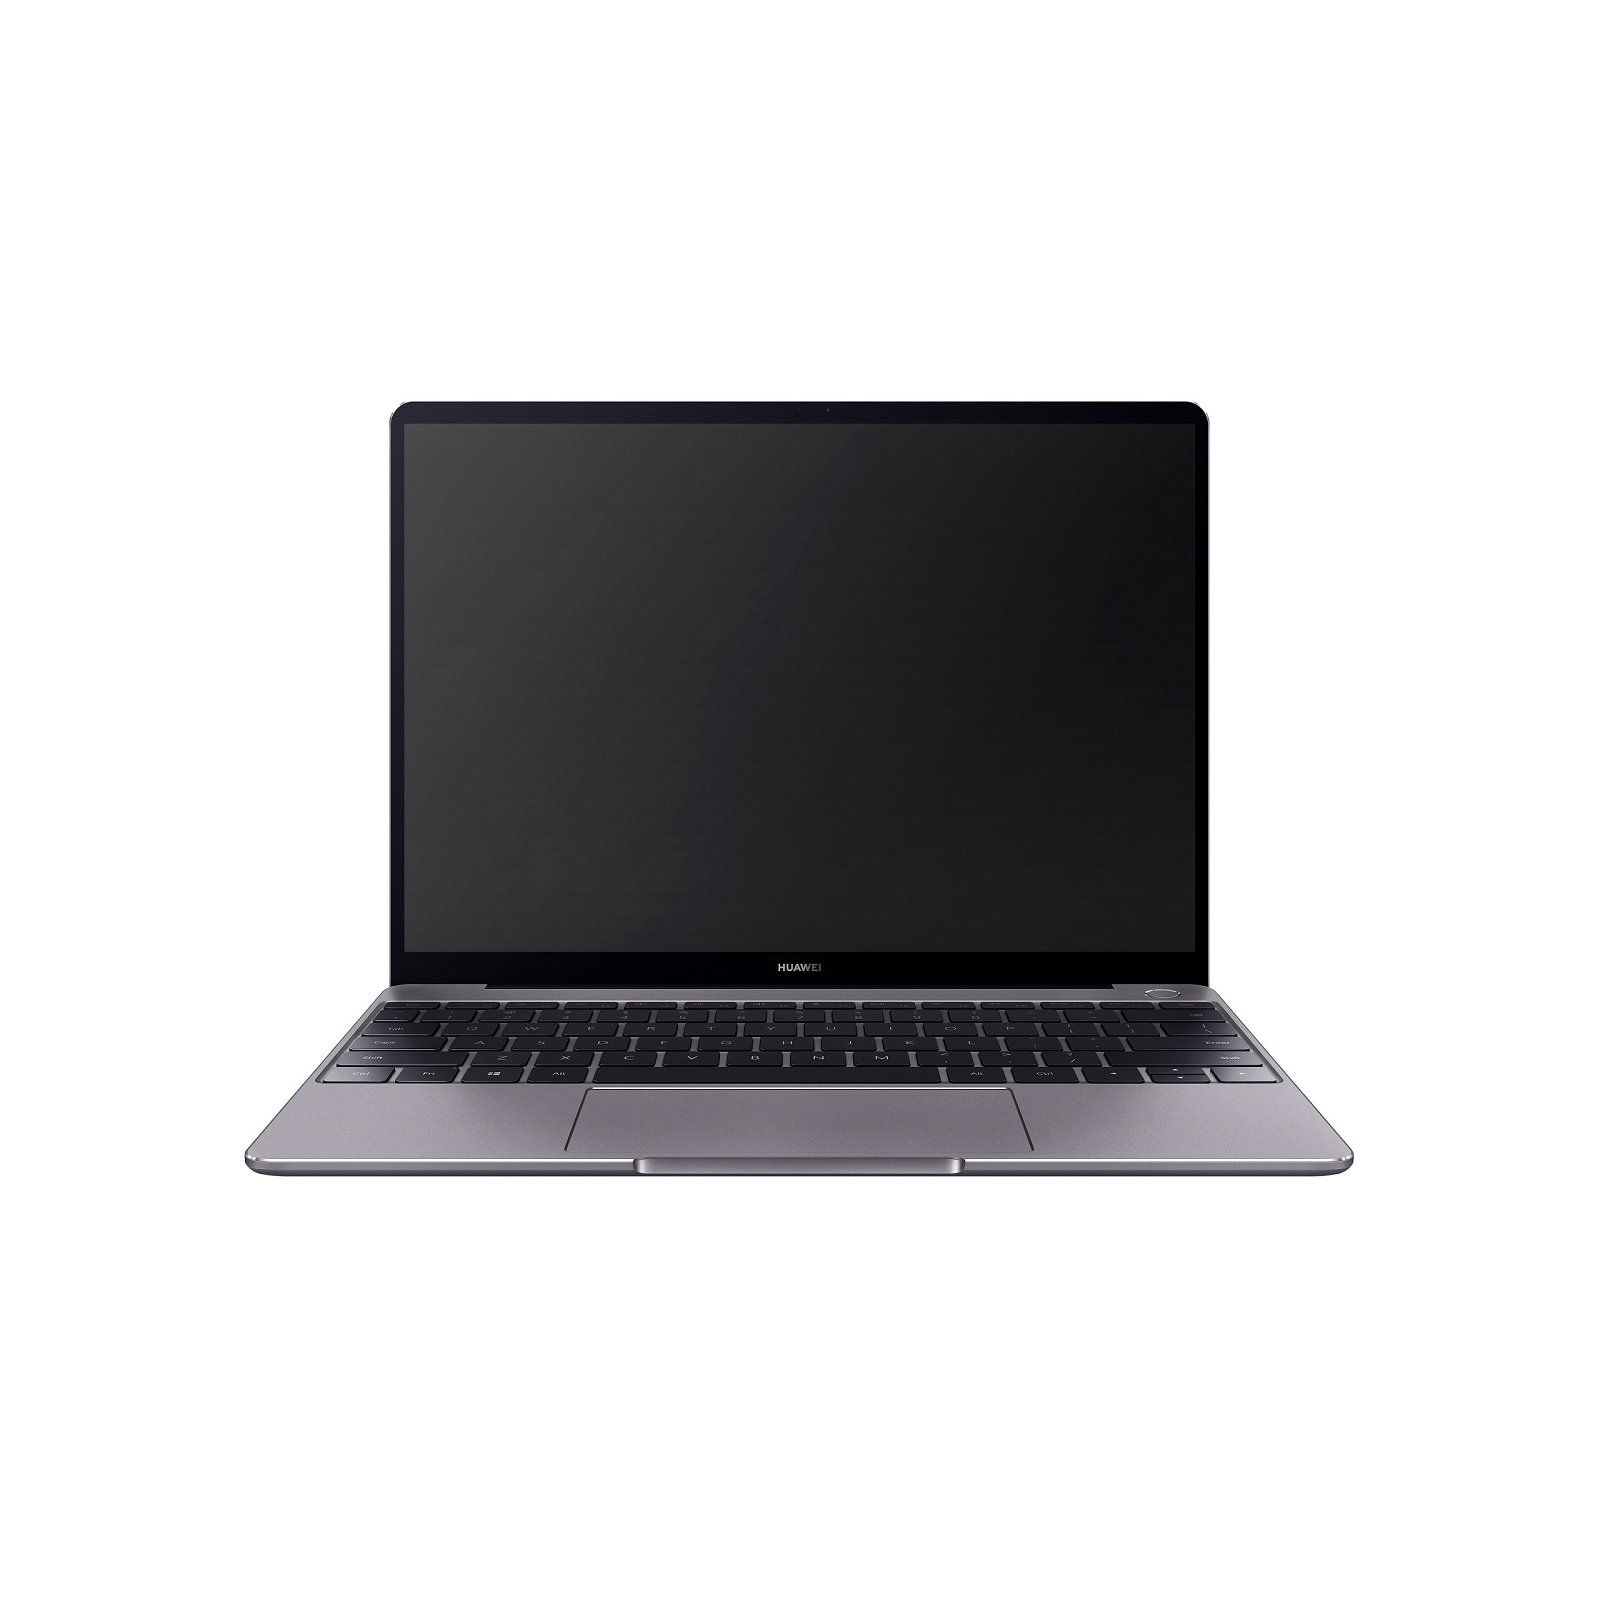 Huawei Matebook 13 laptop